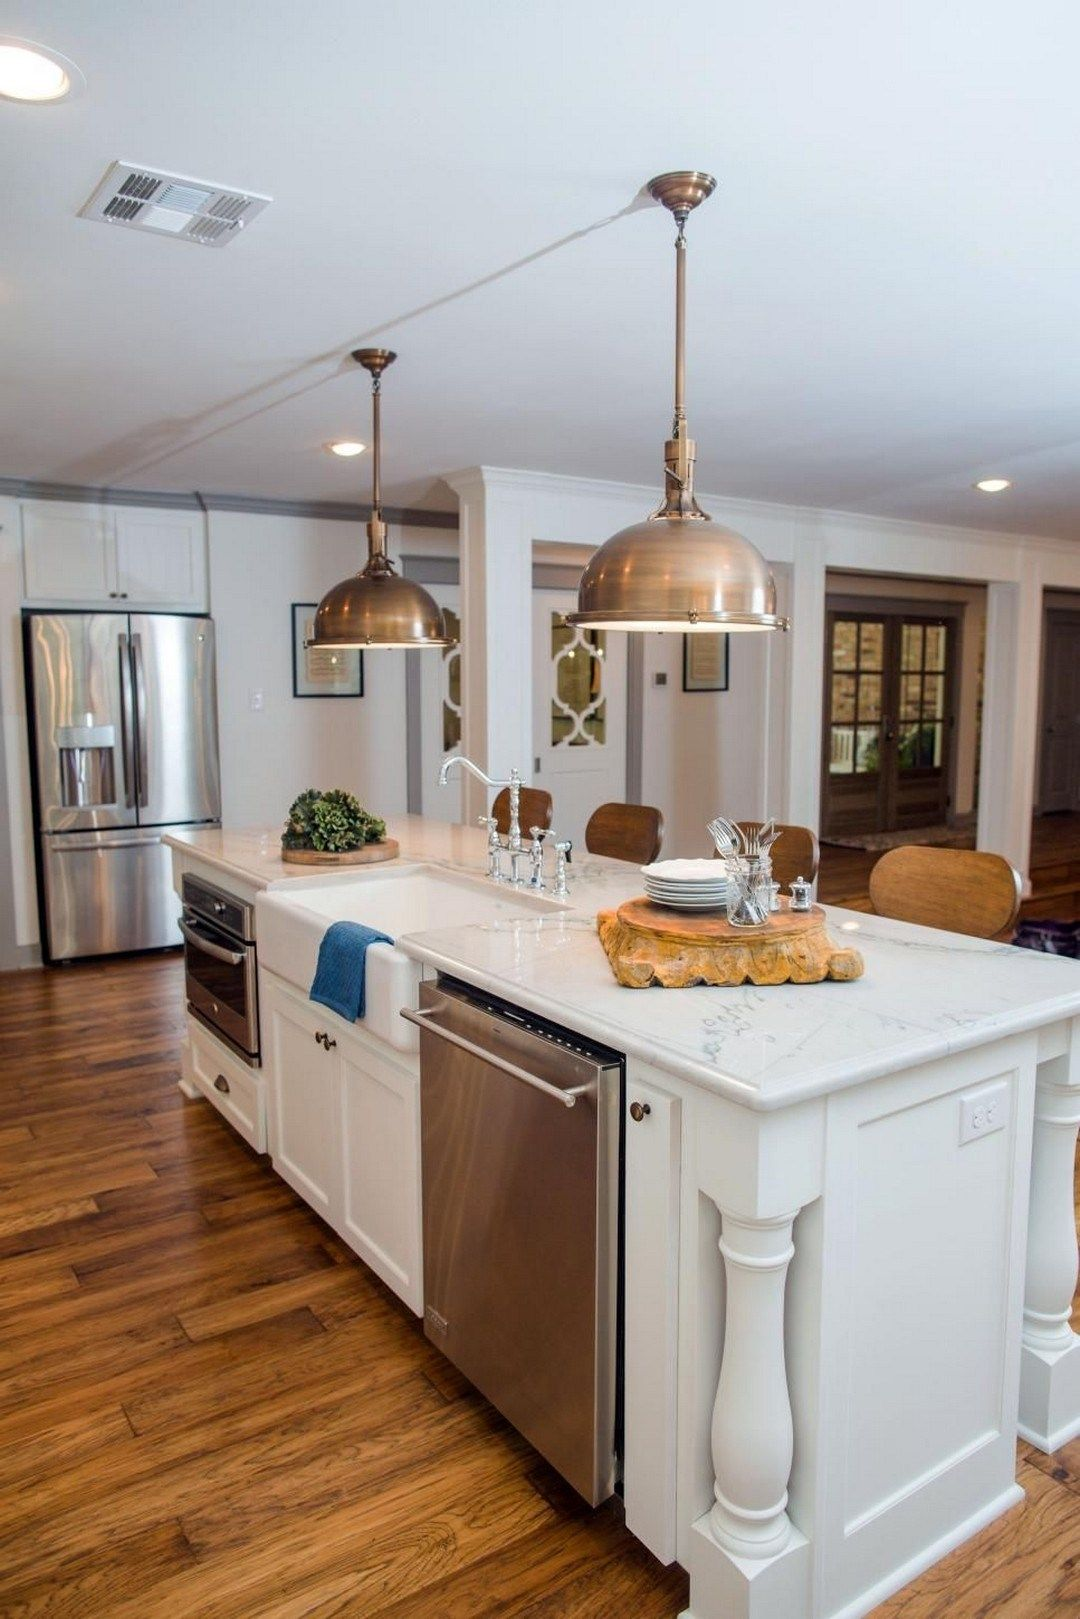 52 Farmhouse Sink Pros Cons Kitchen Island With Sink Kitchen Sink Design Functional Kitchen Island